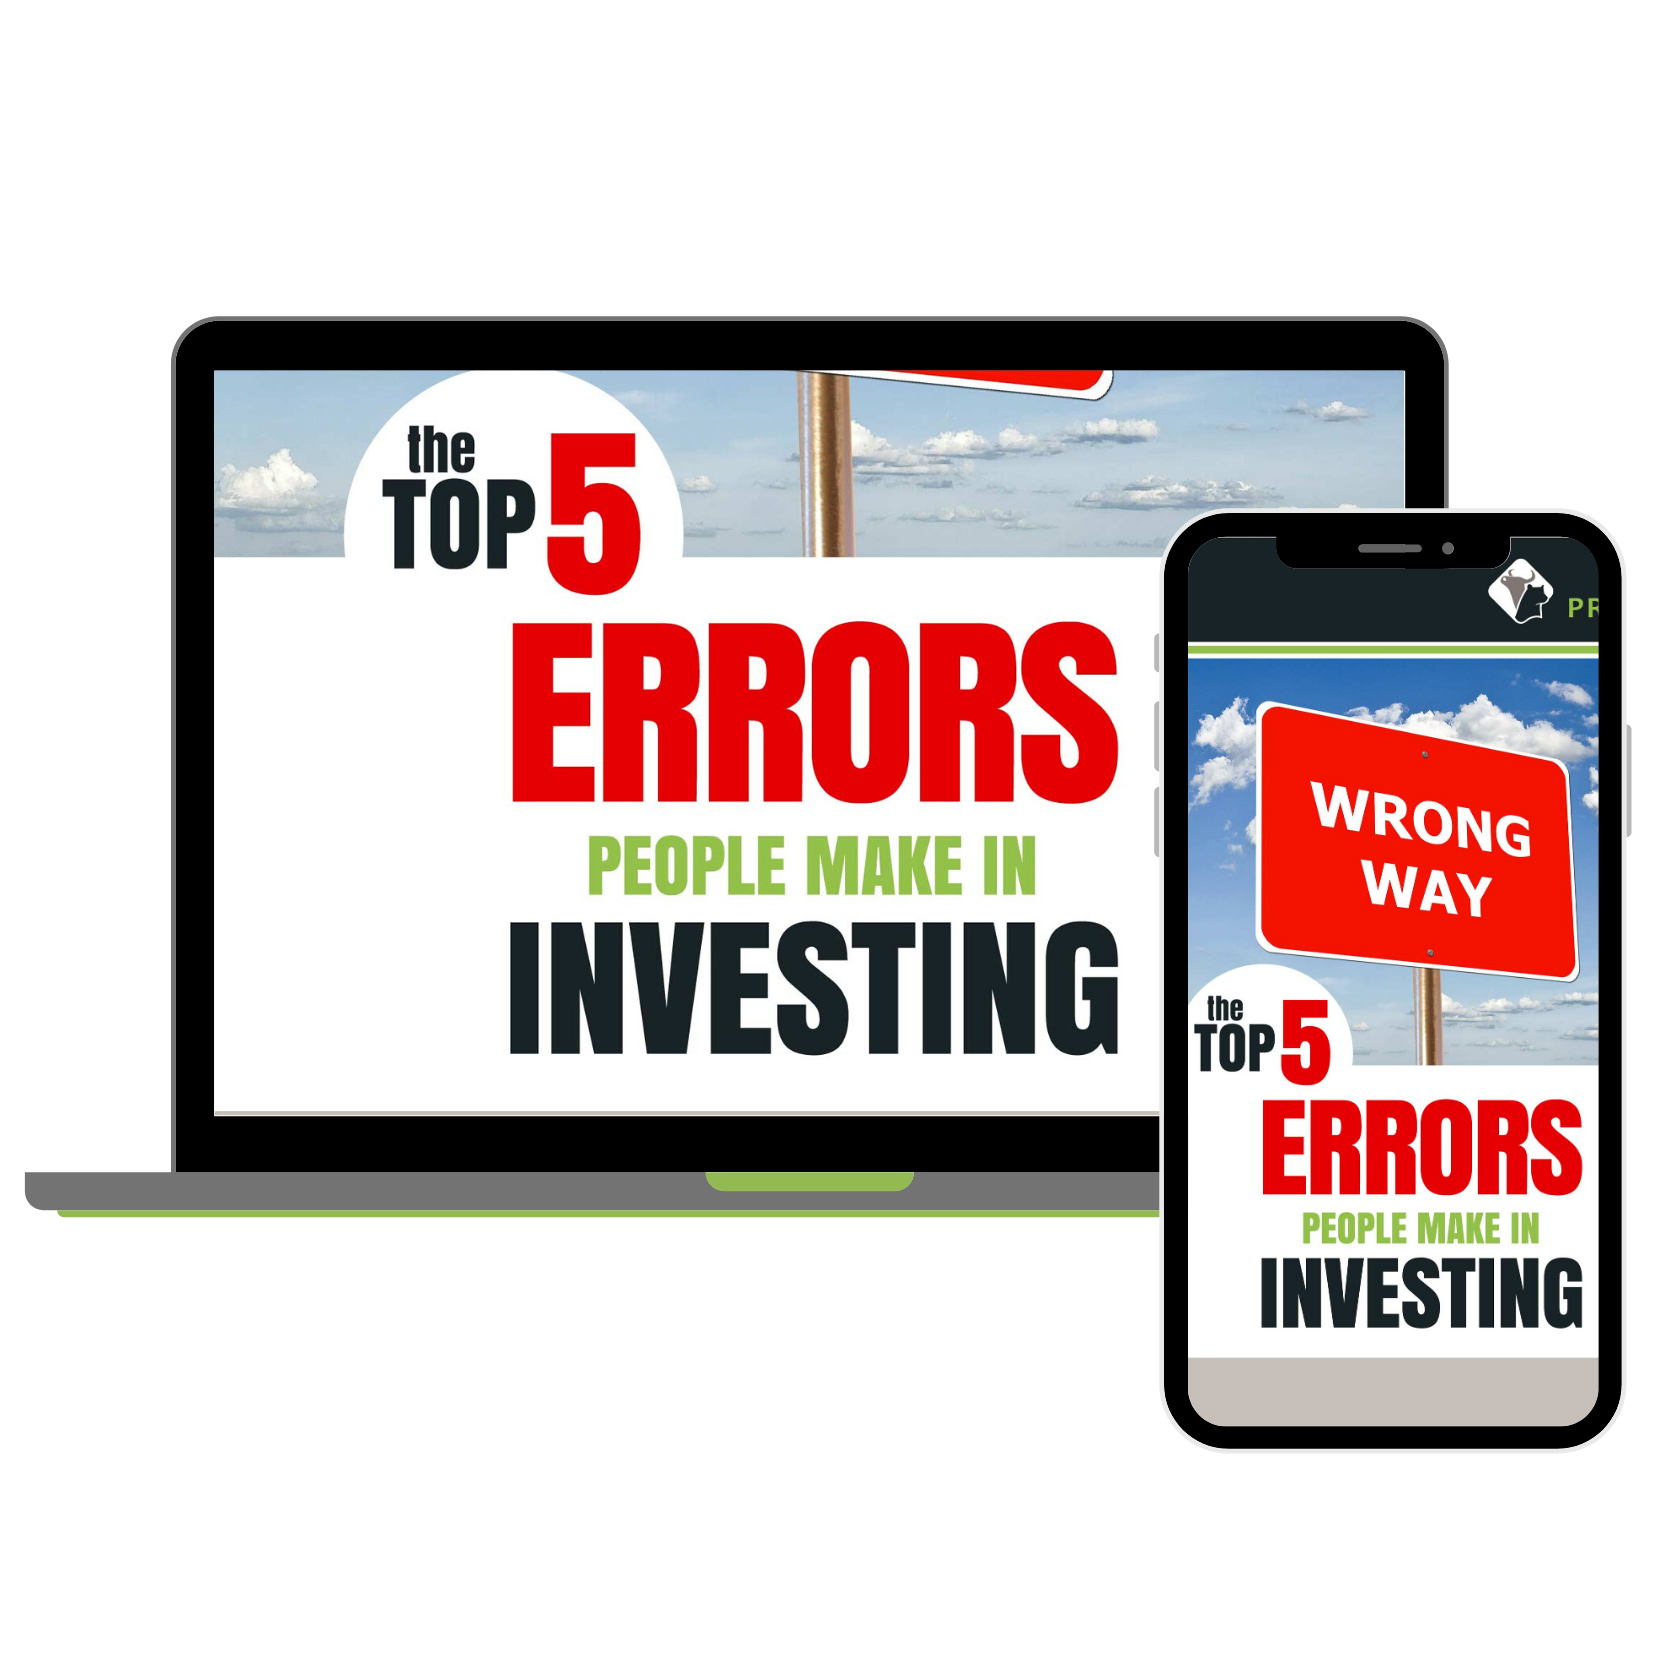 Top 5 Errors in Investing